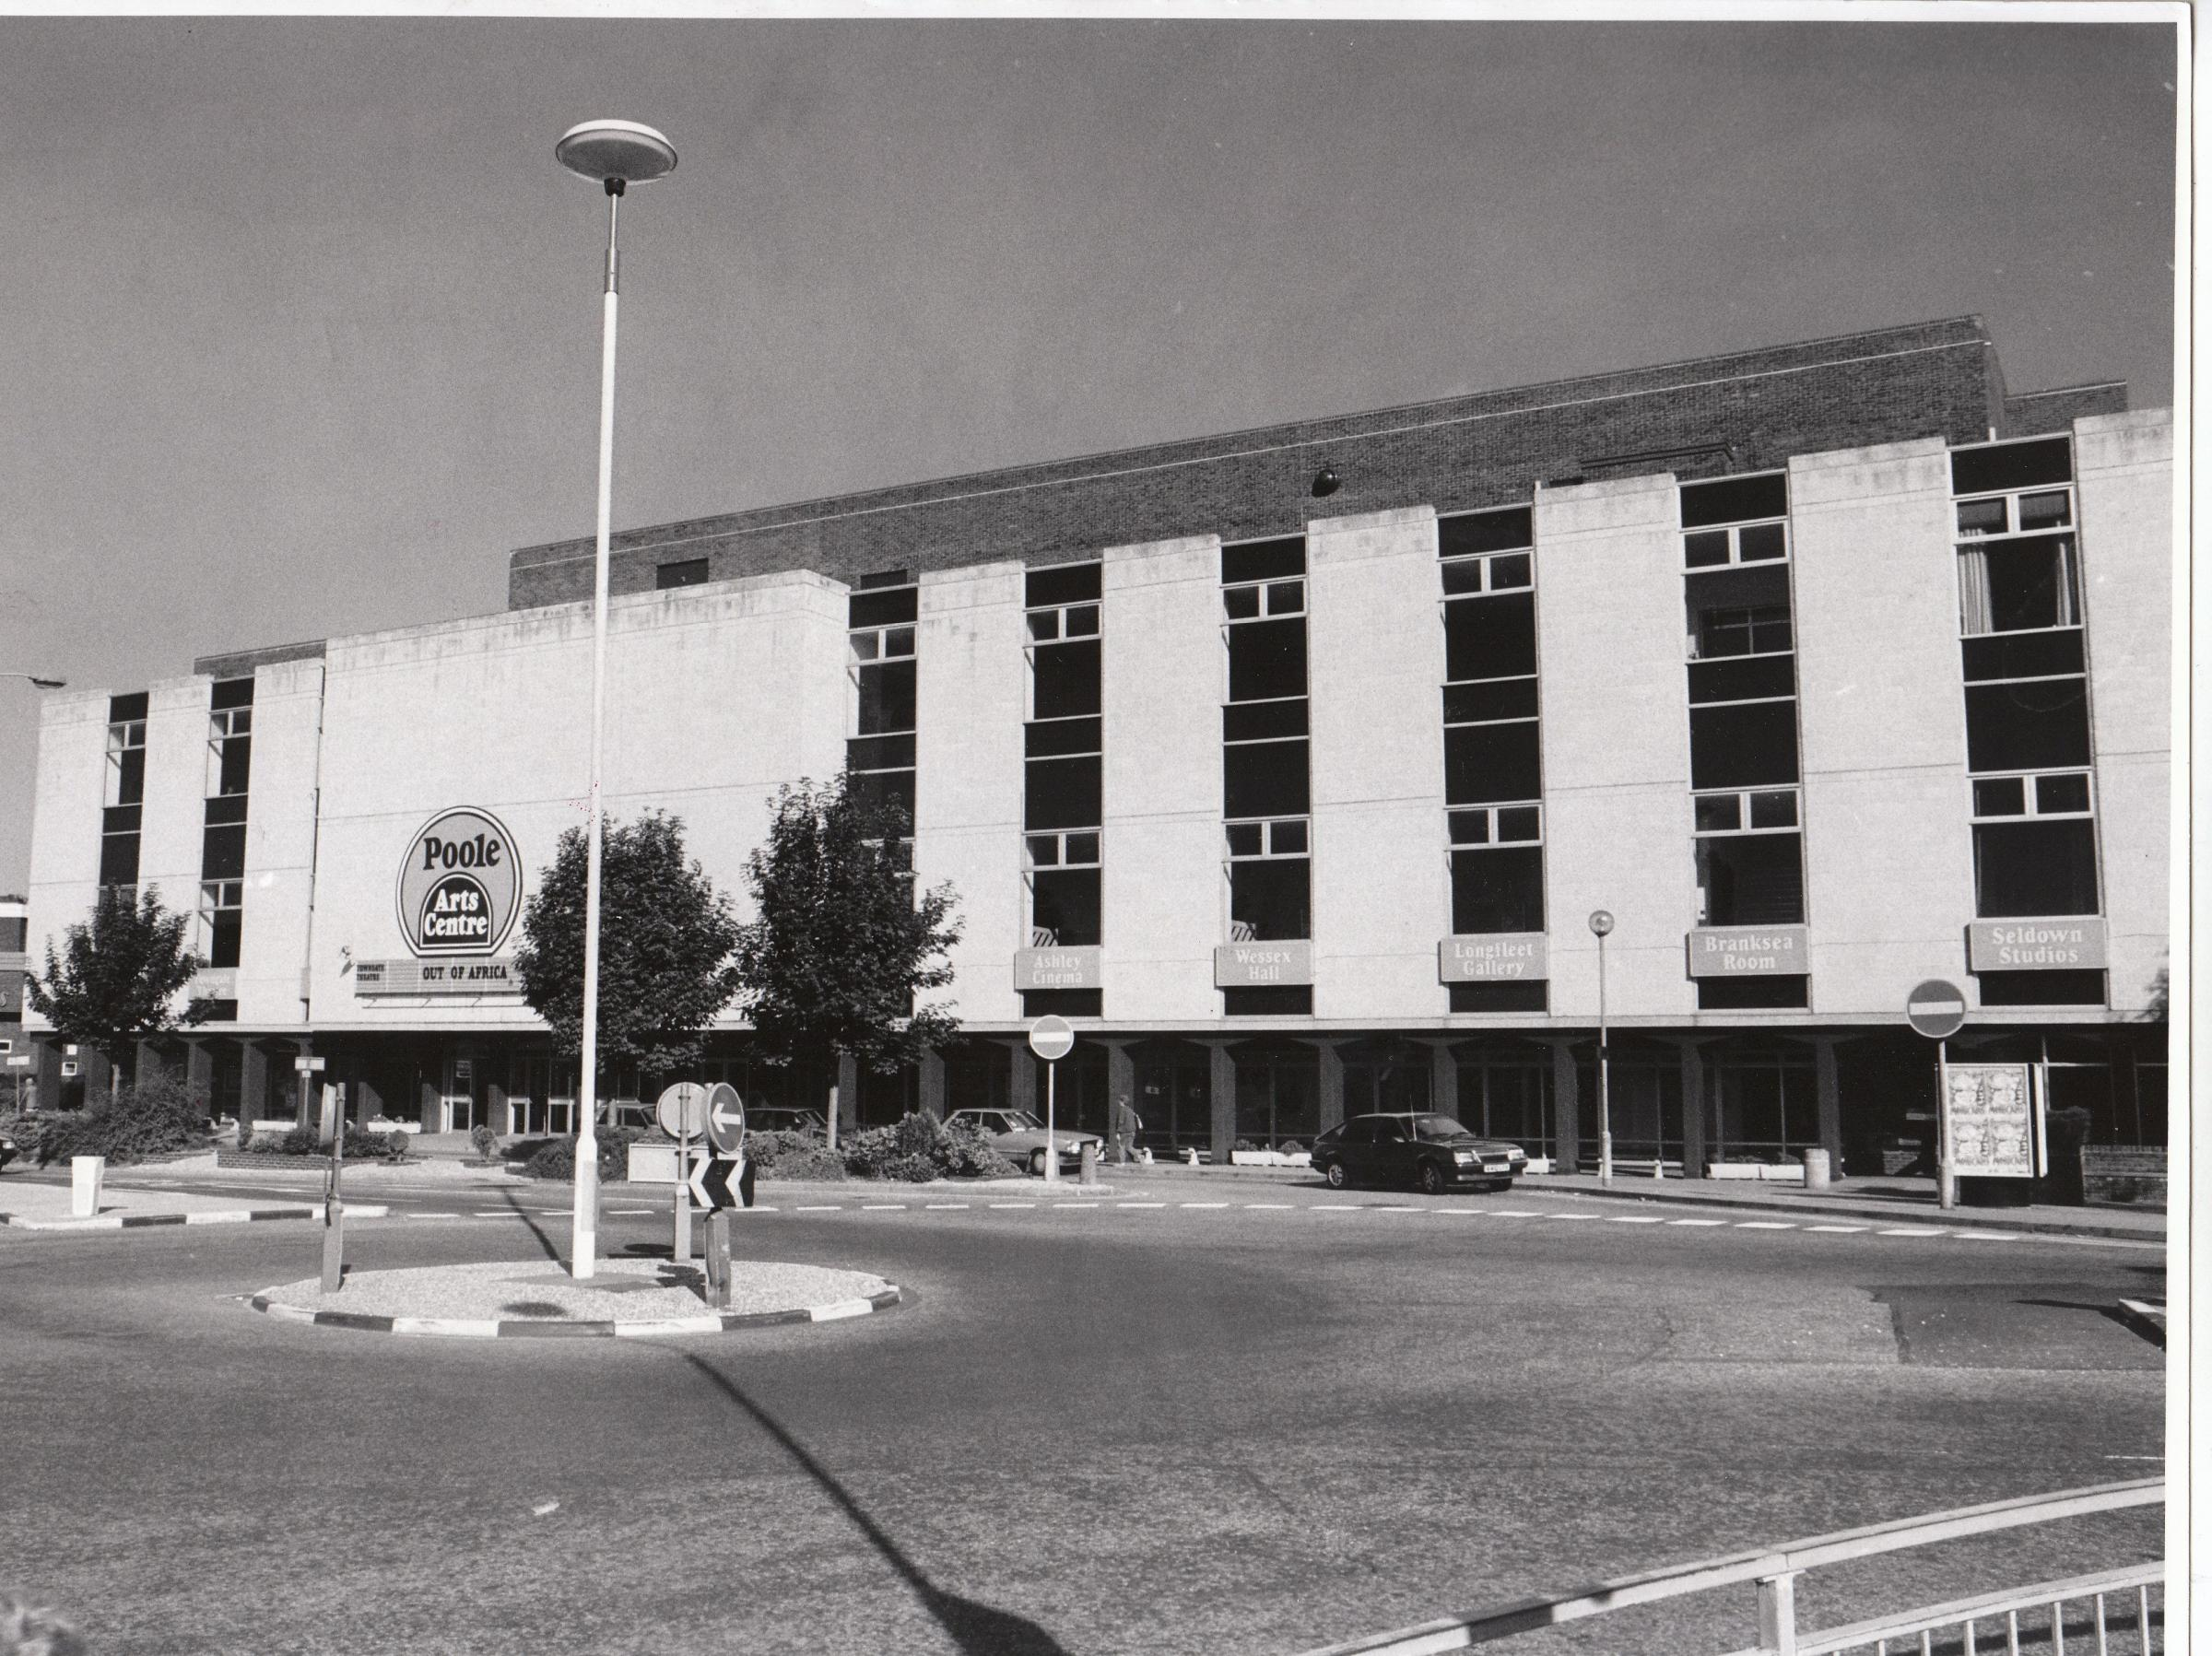 Poole Arts Centre in September 1986